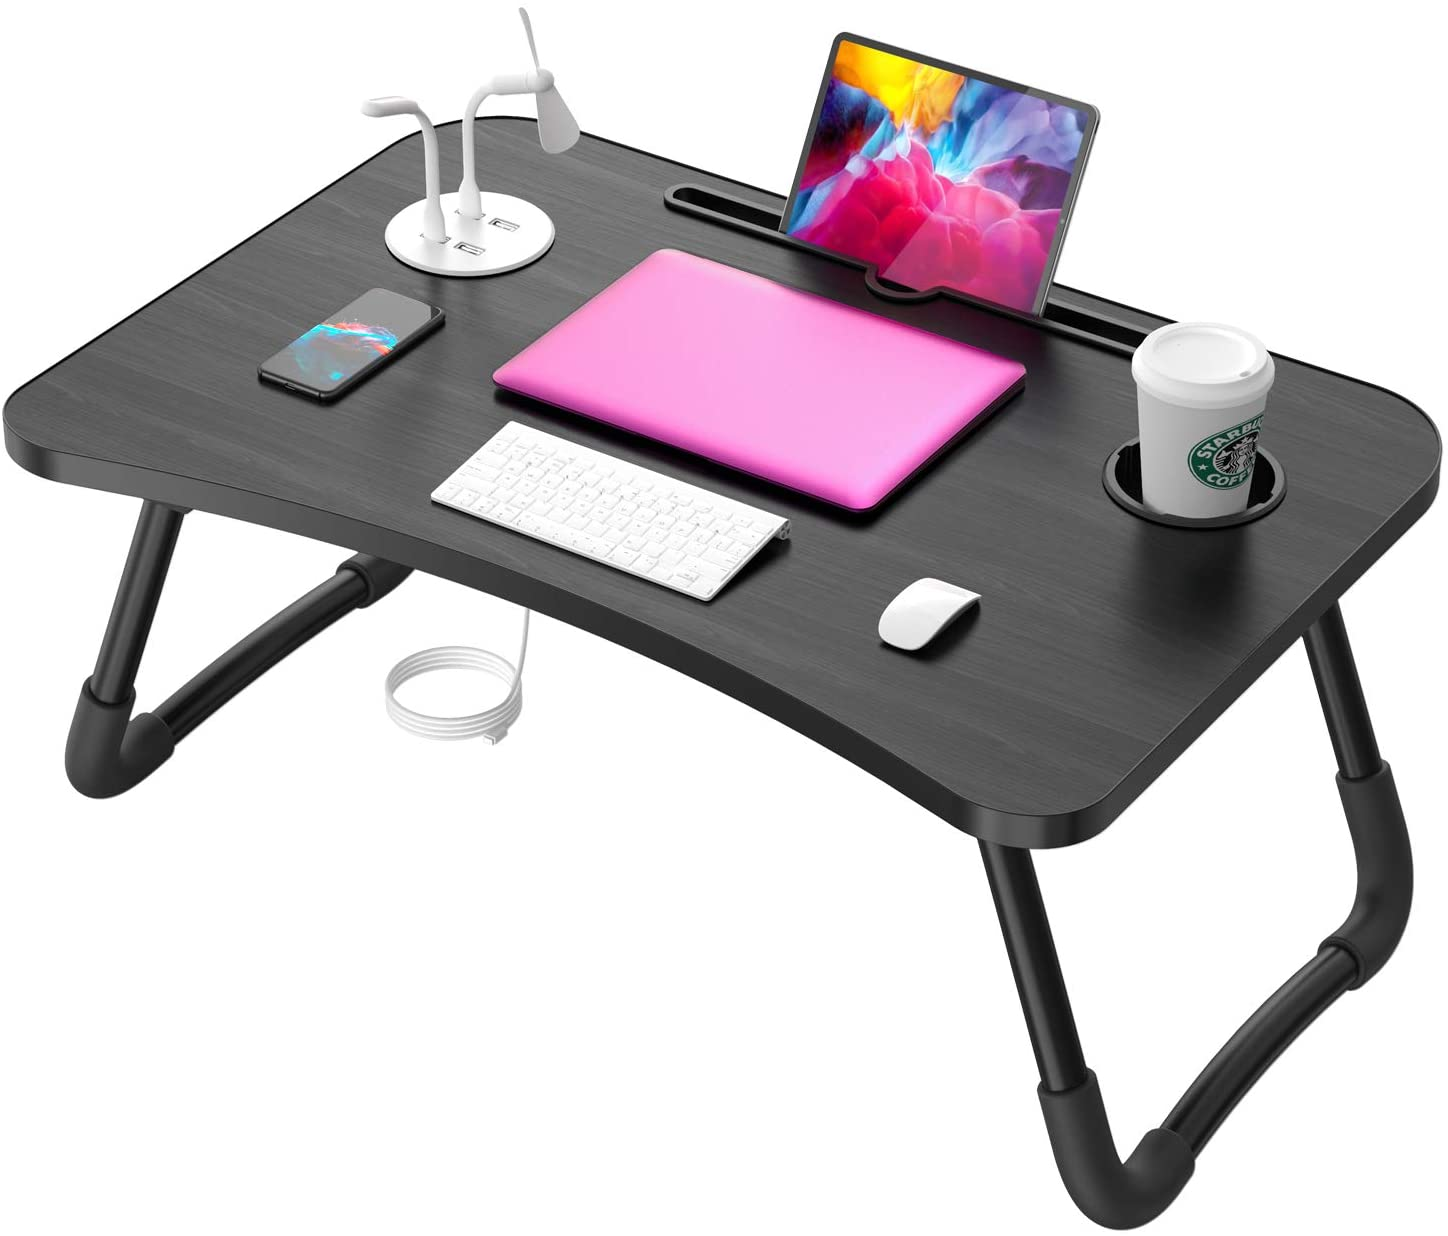 Standing Laptop Desk with USB Plugs And Cup Holder